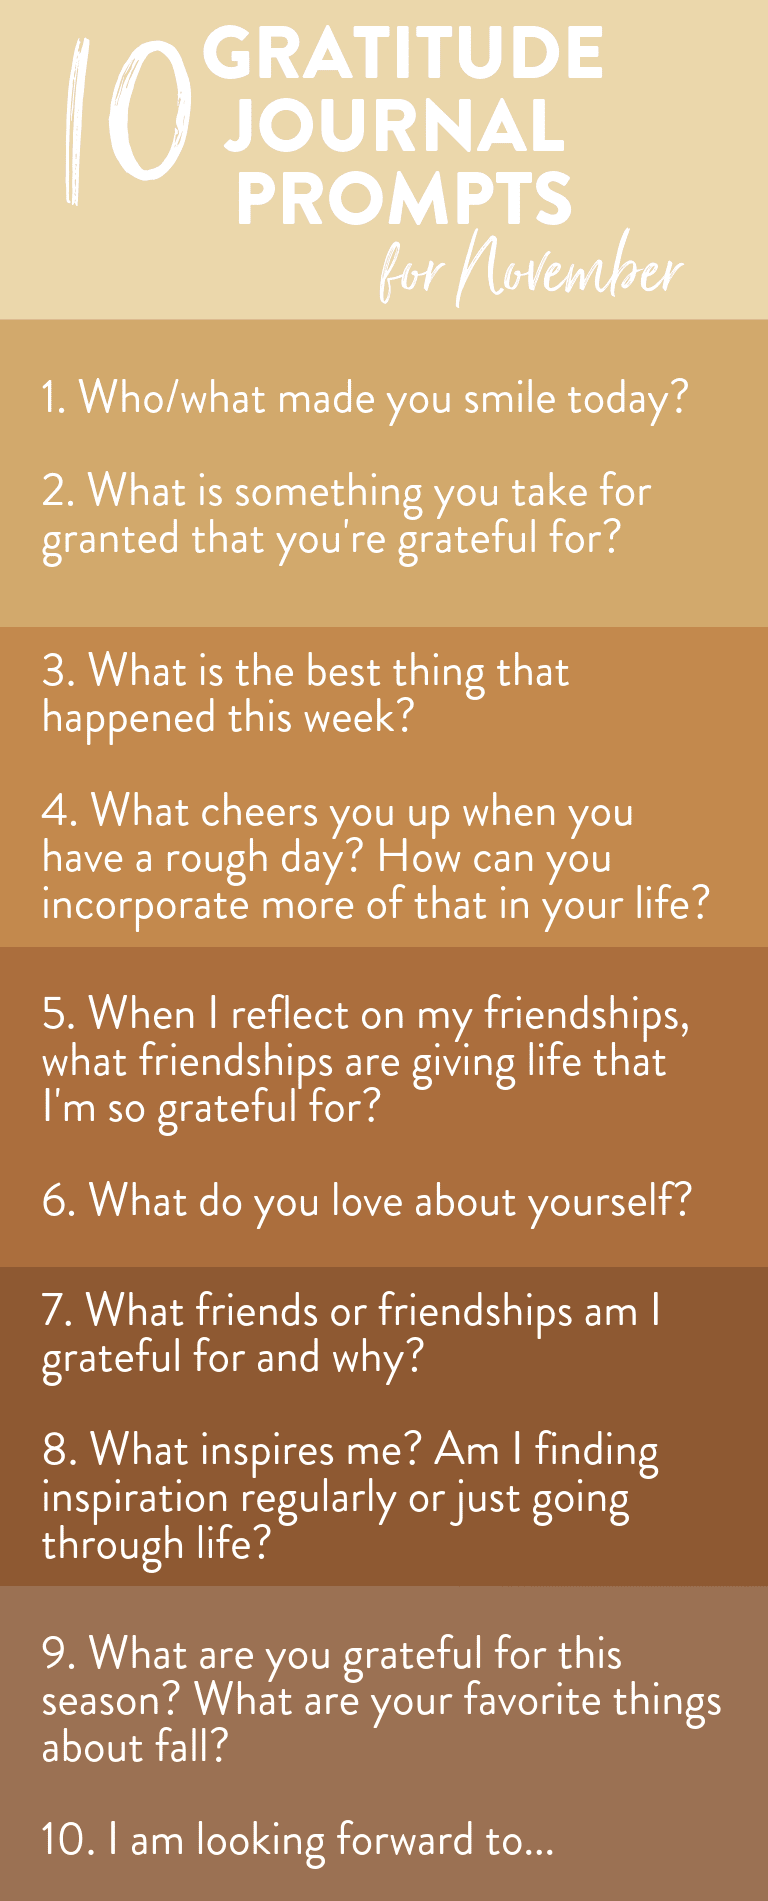 Looking to start a gratitude journal? Here is a list of journal prompts for November to feel more grateful.